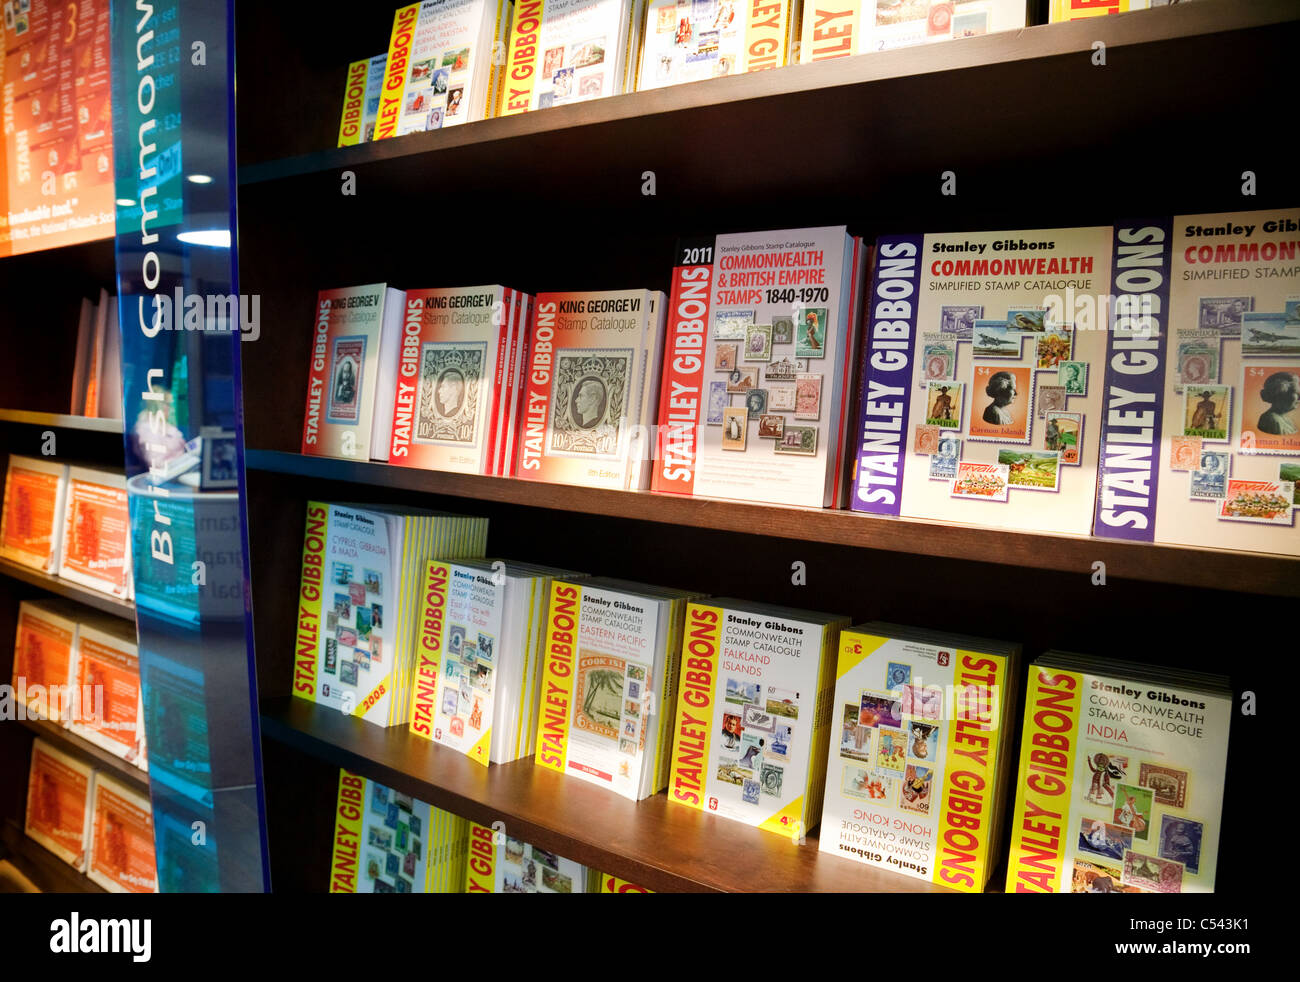 Stamp Catalogues on the shelf at Stanley Gibbons store on the Strand, London UK - Stock Image